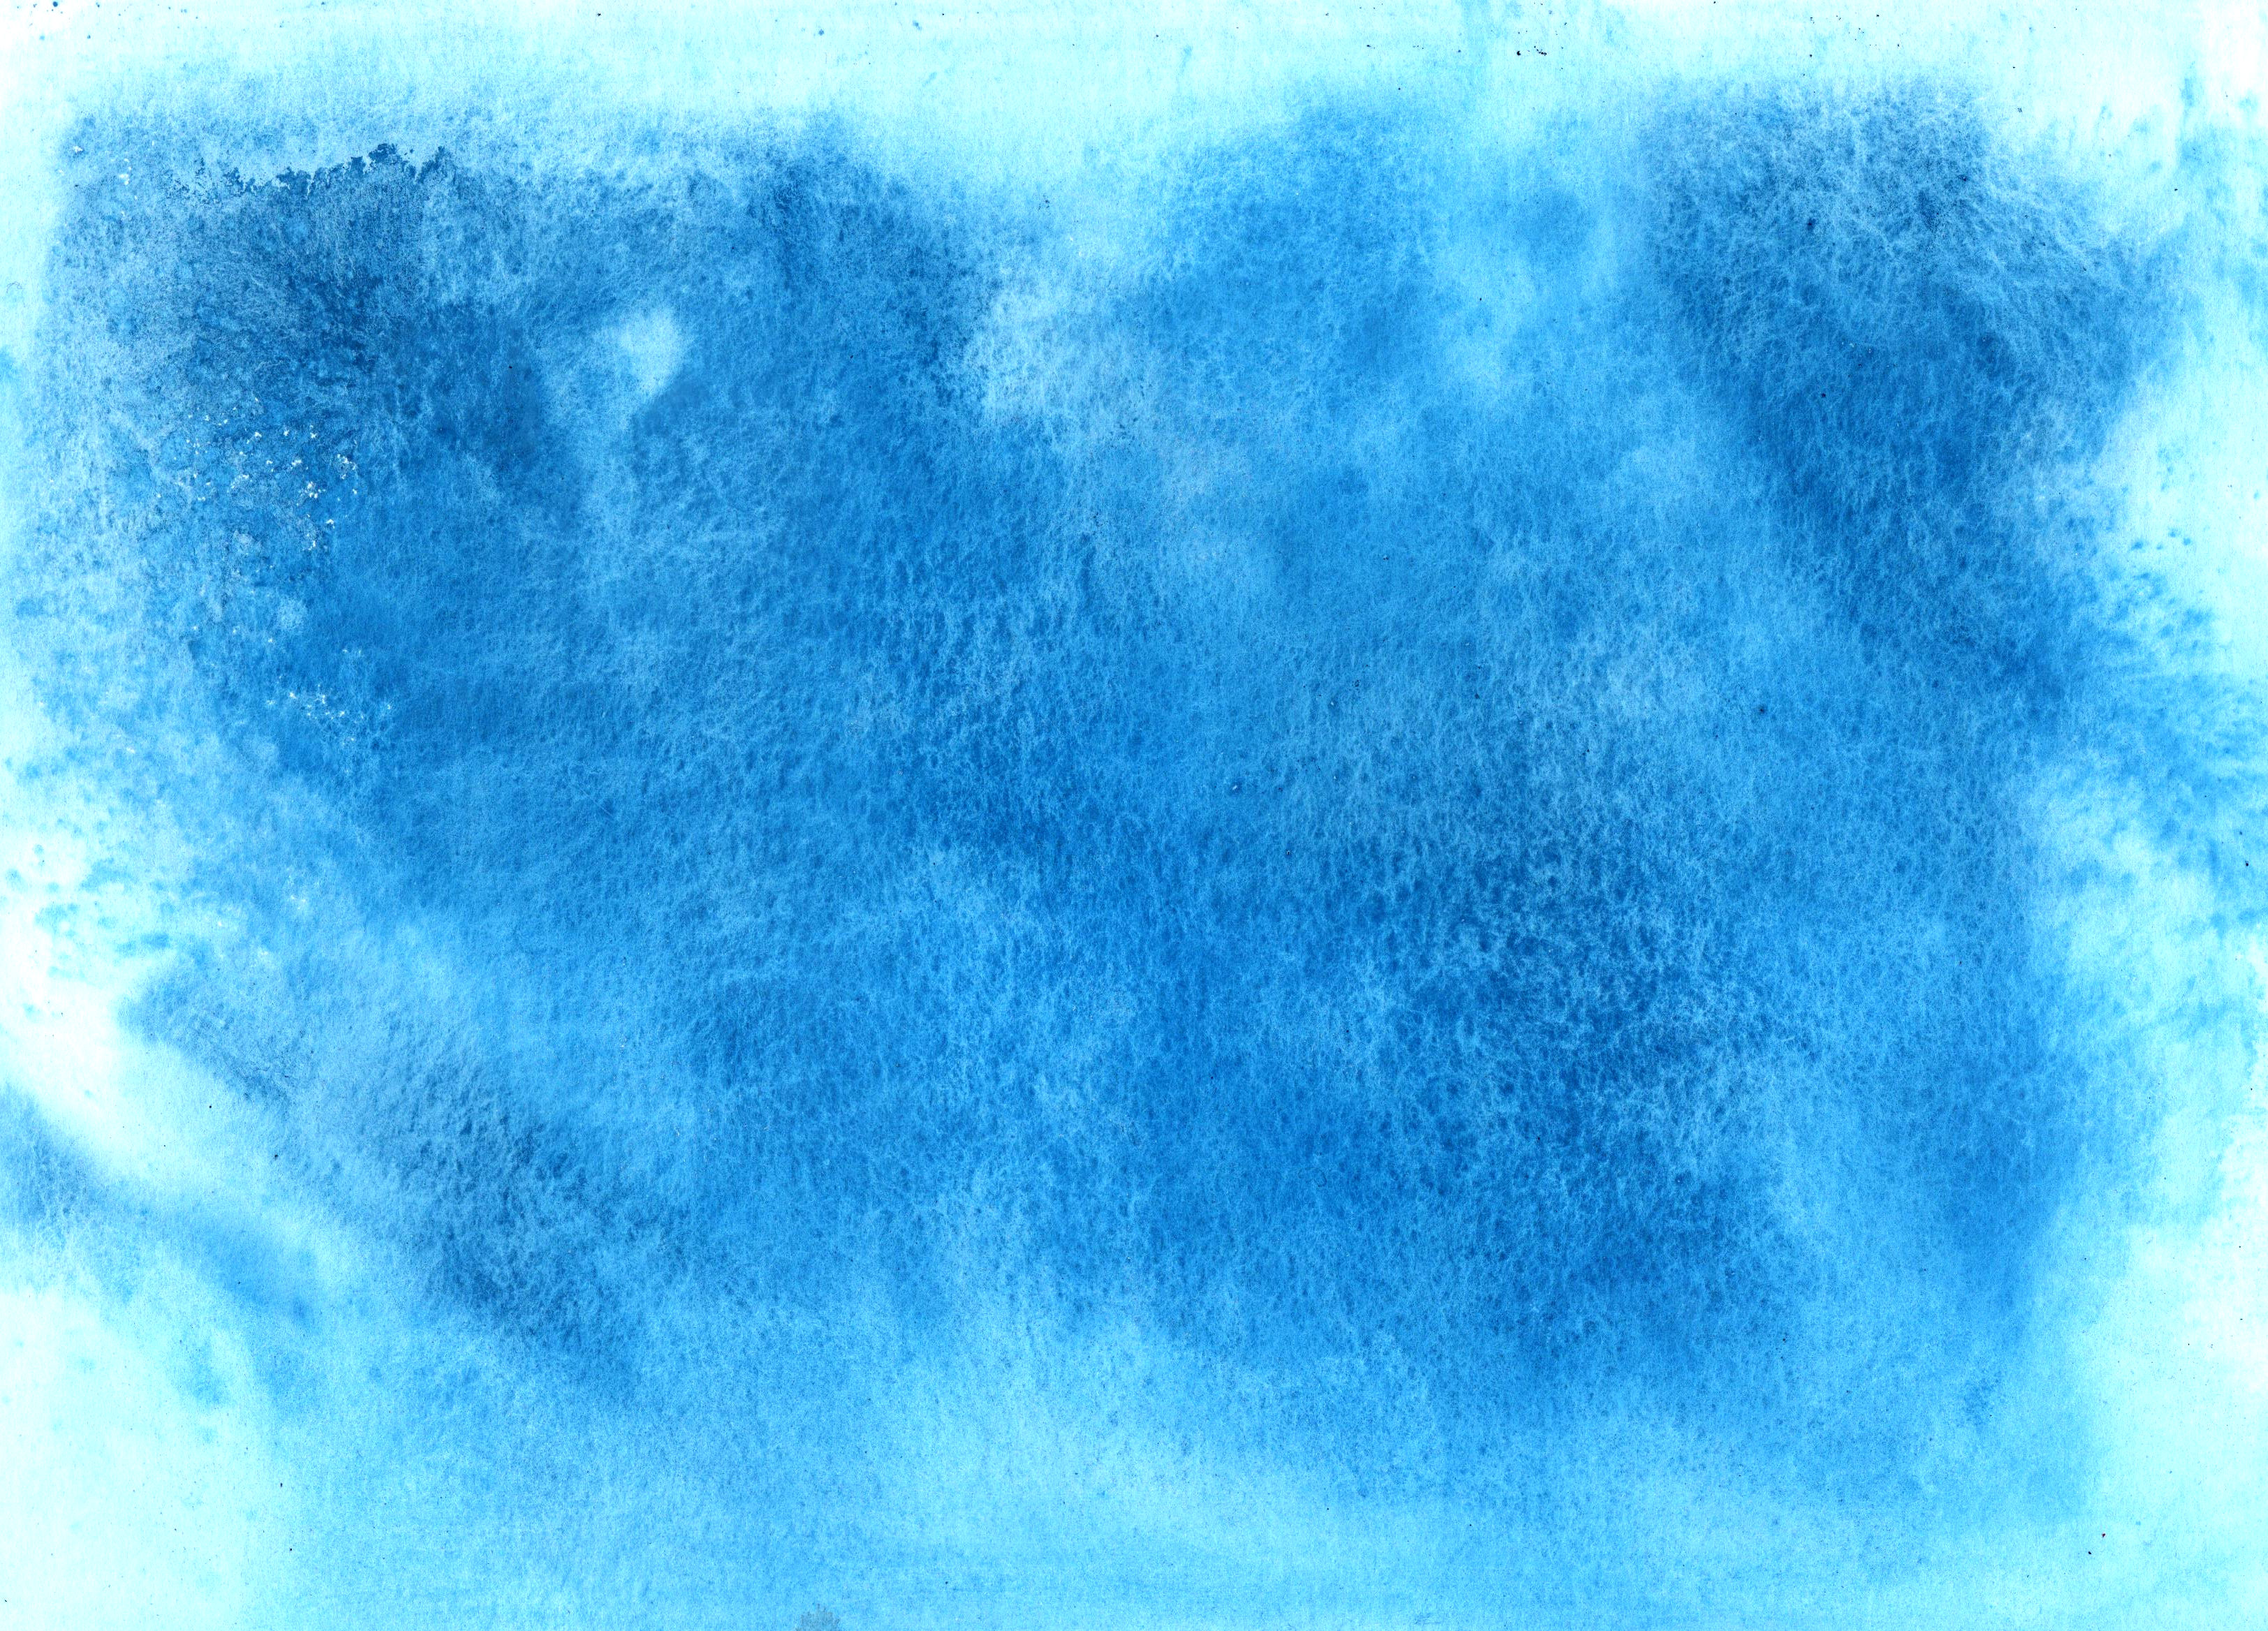 Frame For Pictures 4 Blue Watercolor Texture Jpg Vol 3 Onlygfx Com